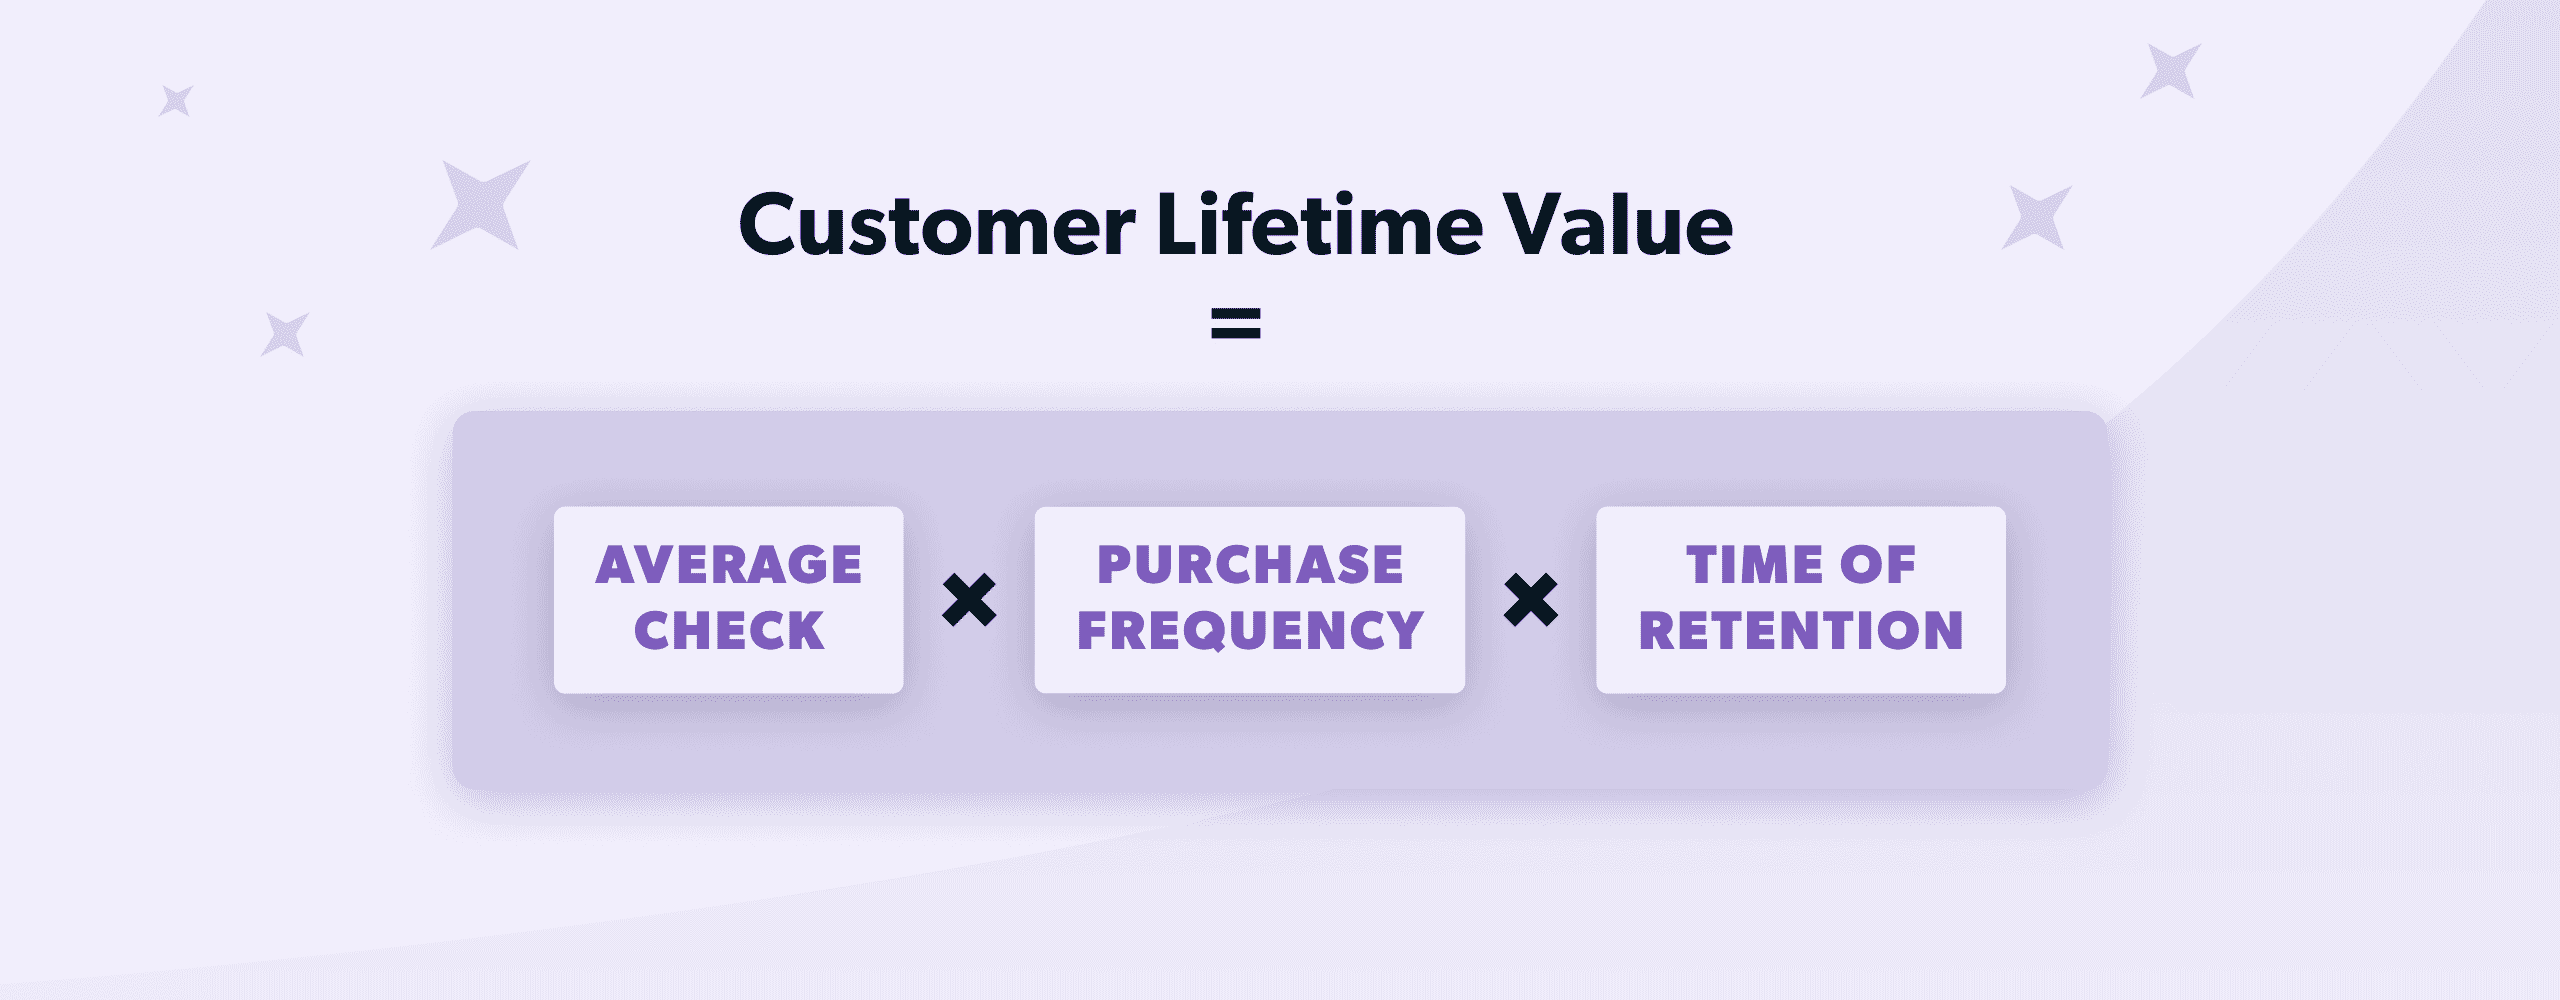 Customer Lifetime Value formula visualized